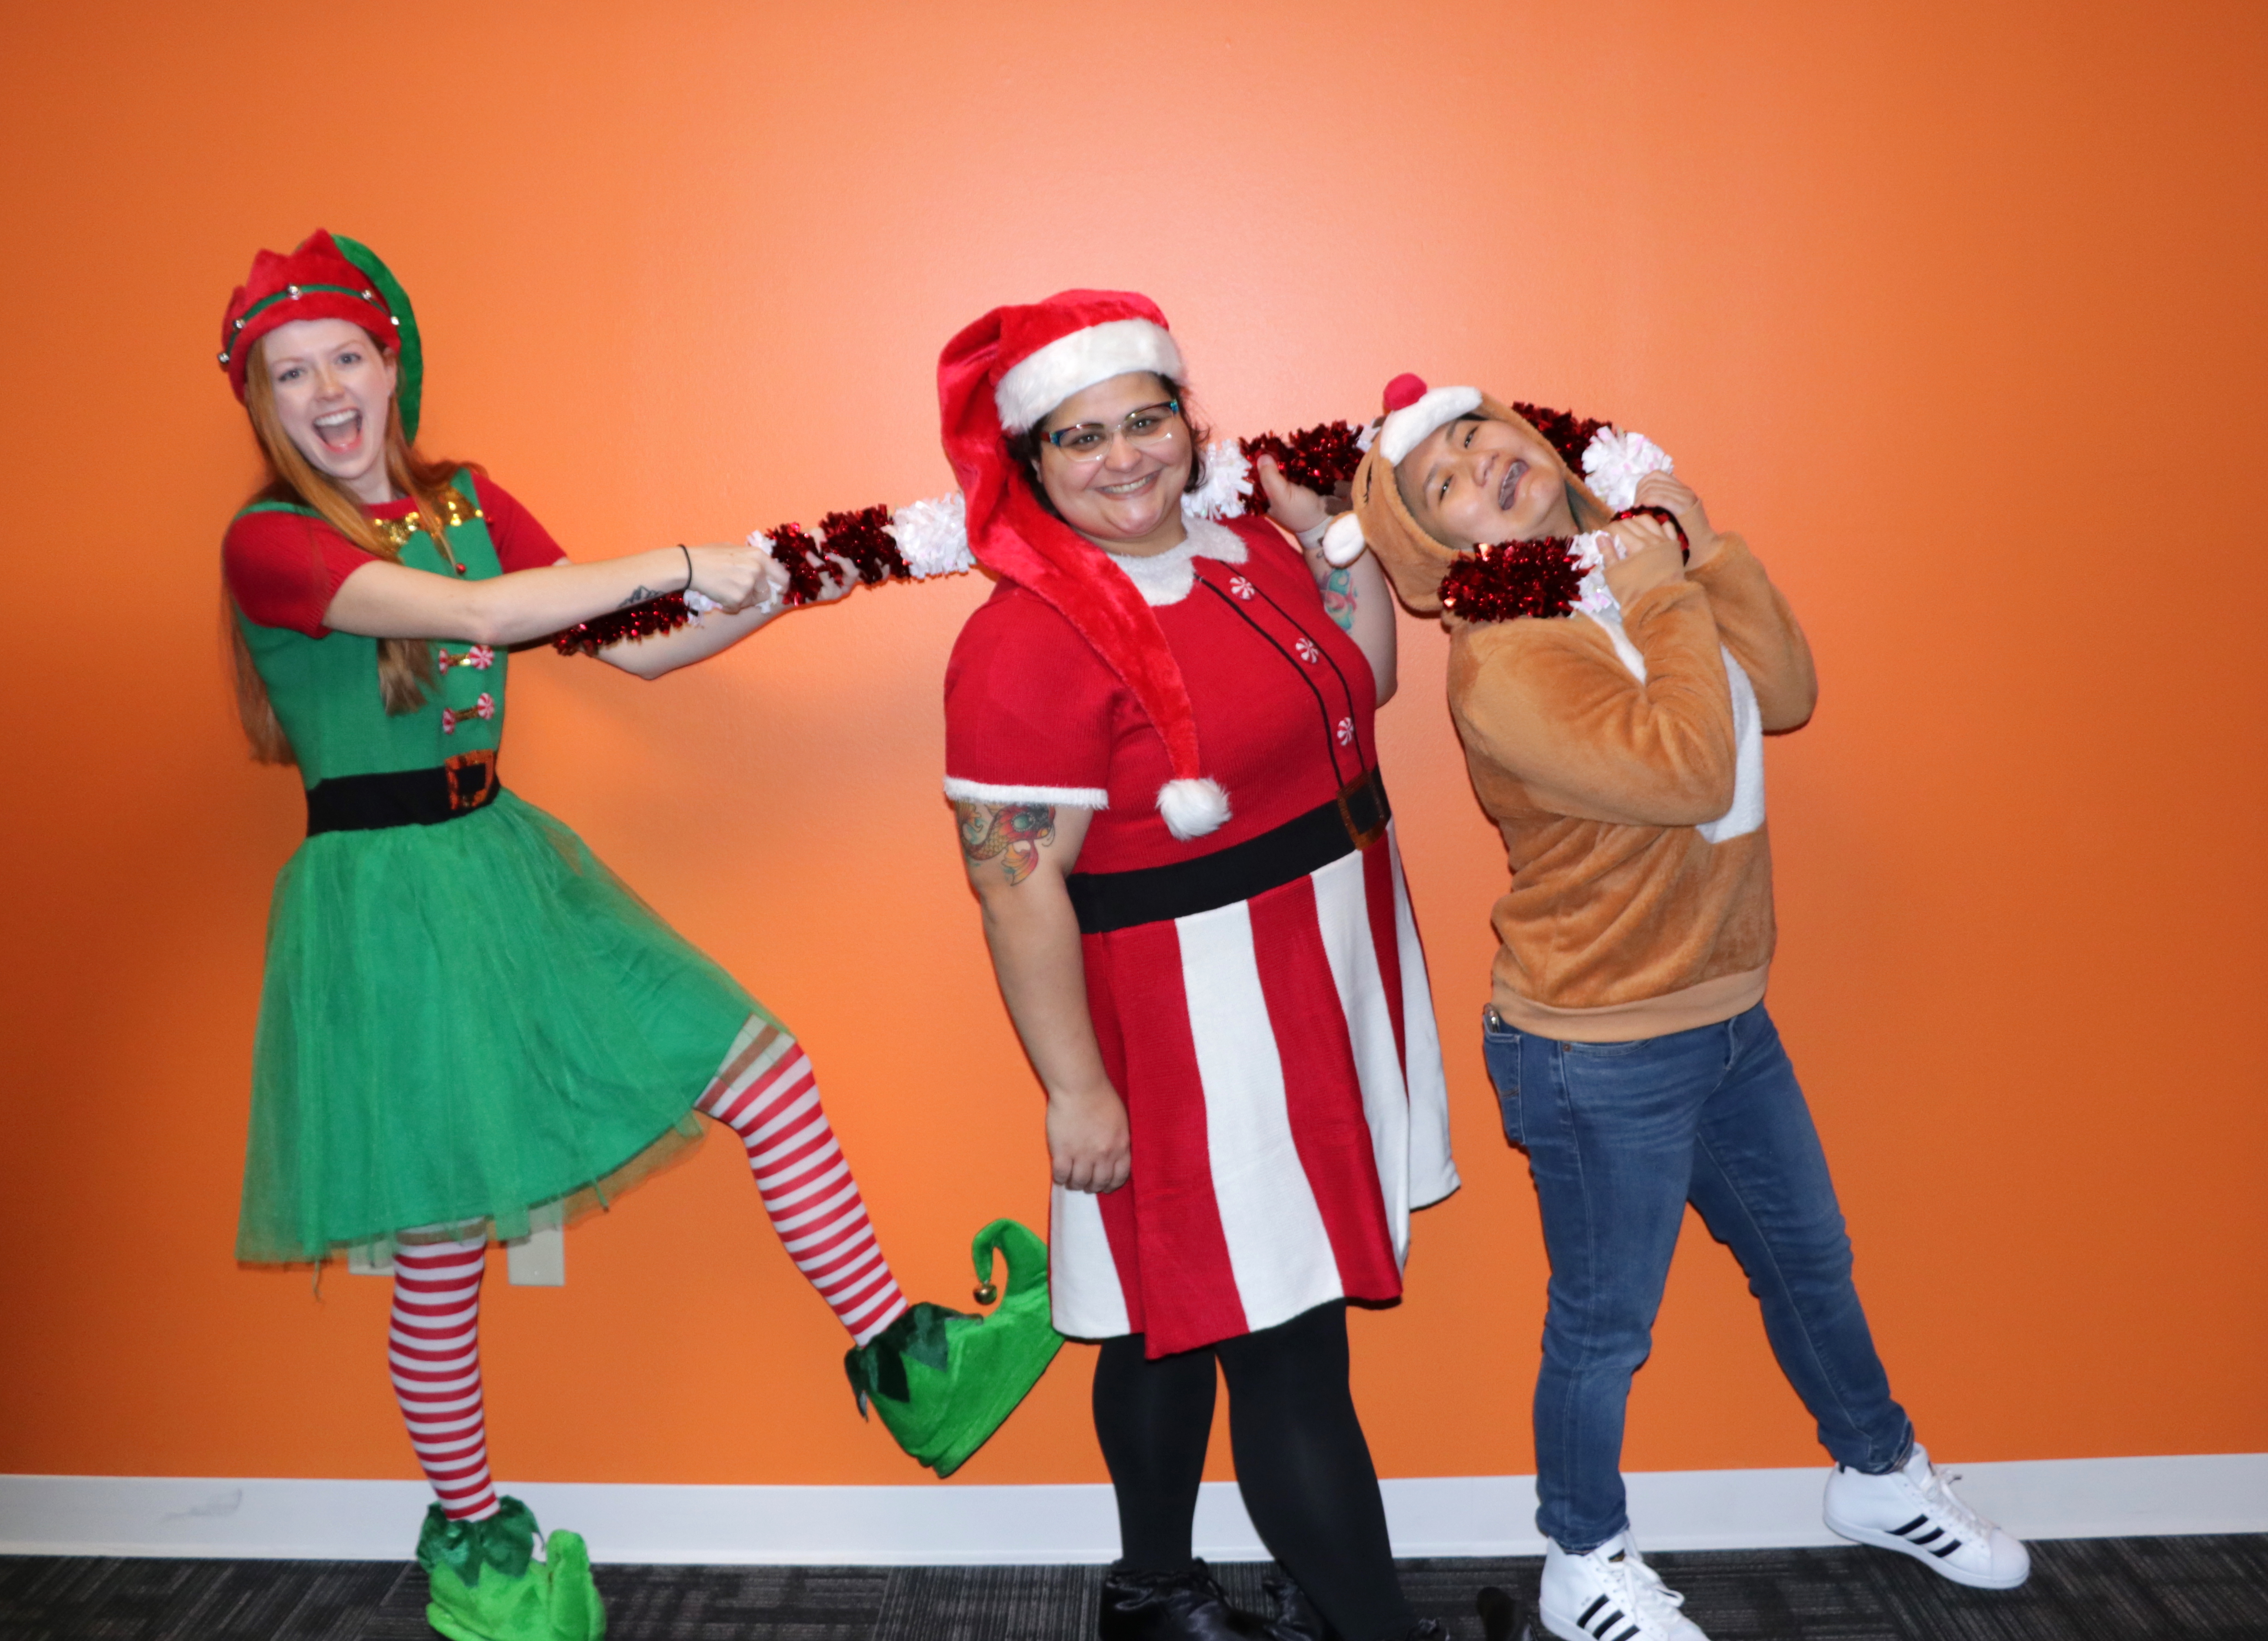 Santa'a Not So Helpers - Courtney Lewis, Natalee Lawson, Kit Nguyen